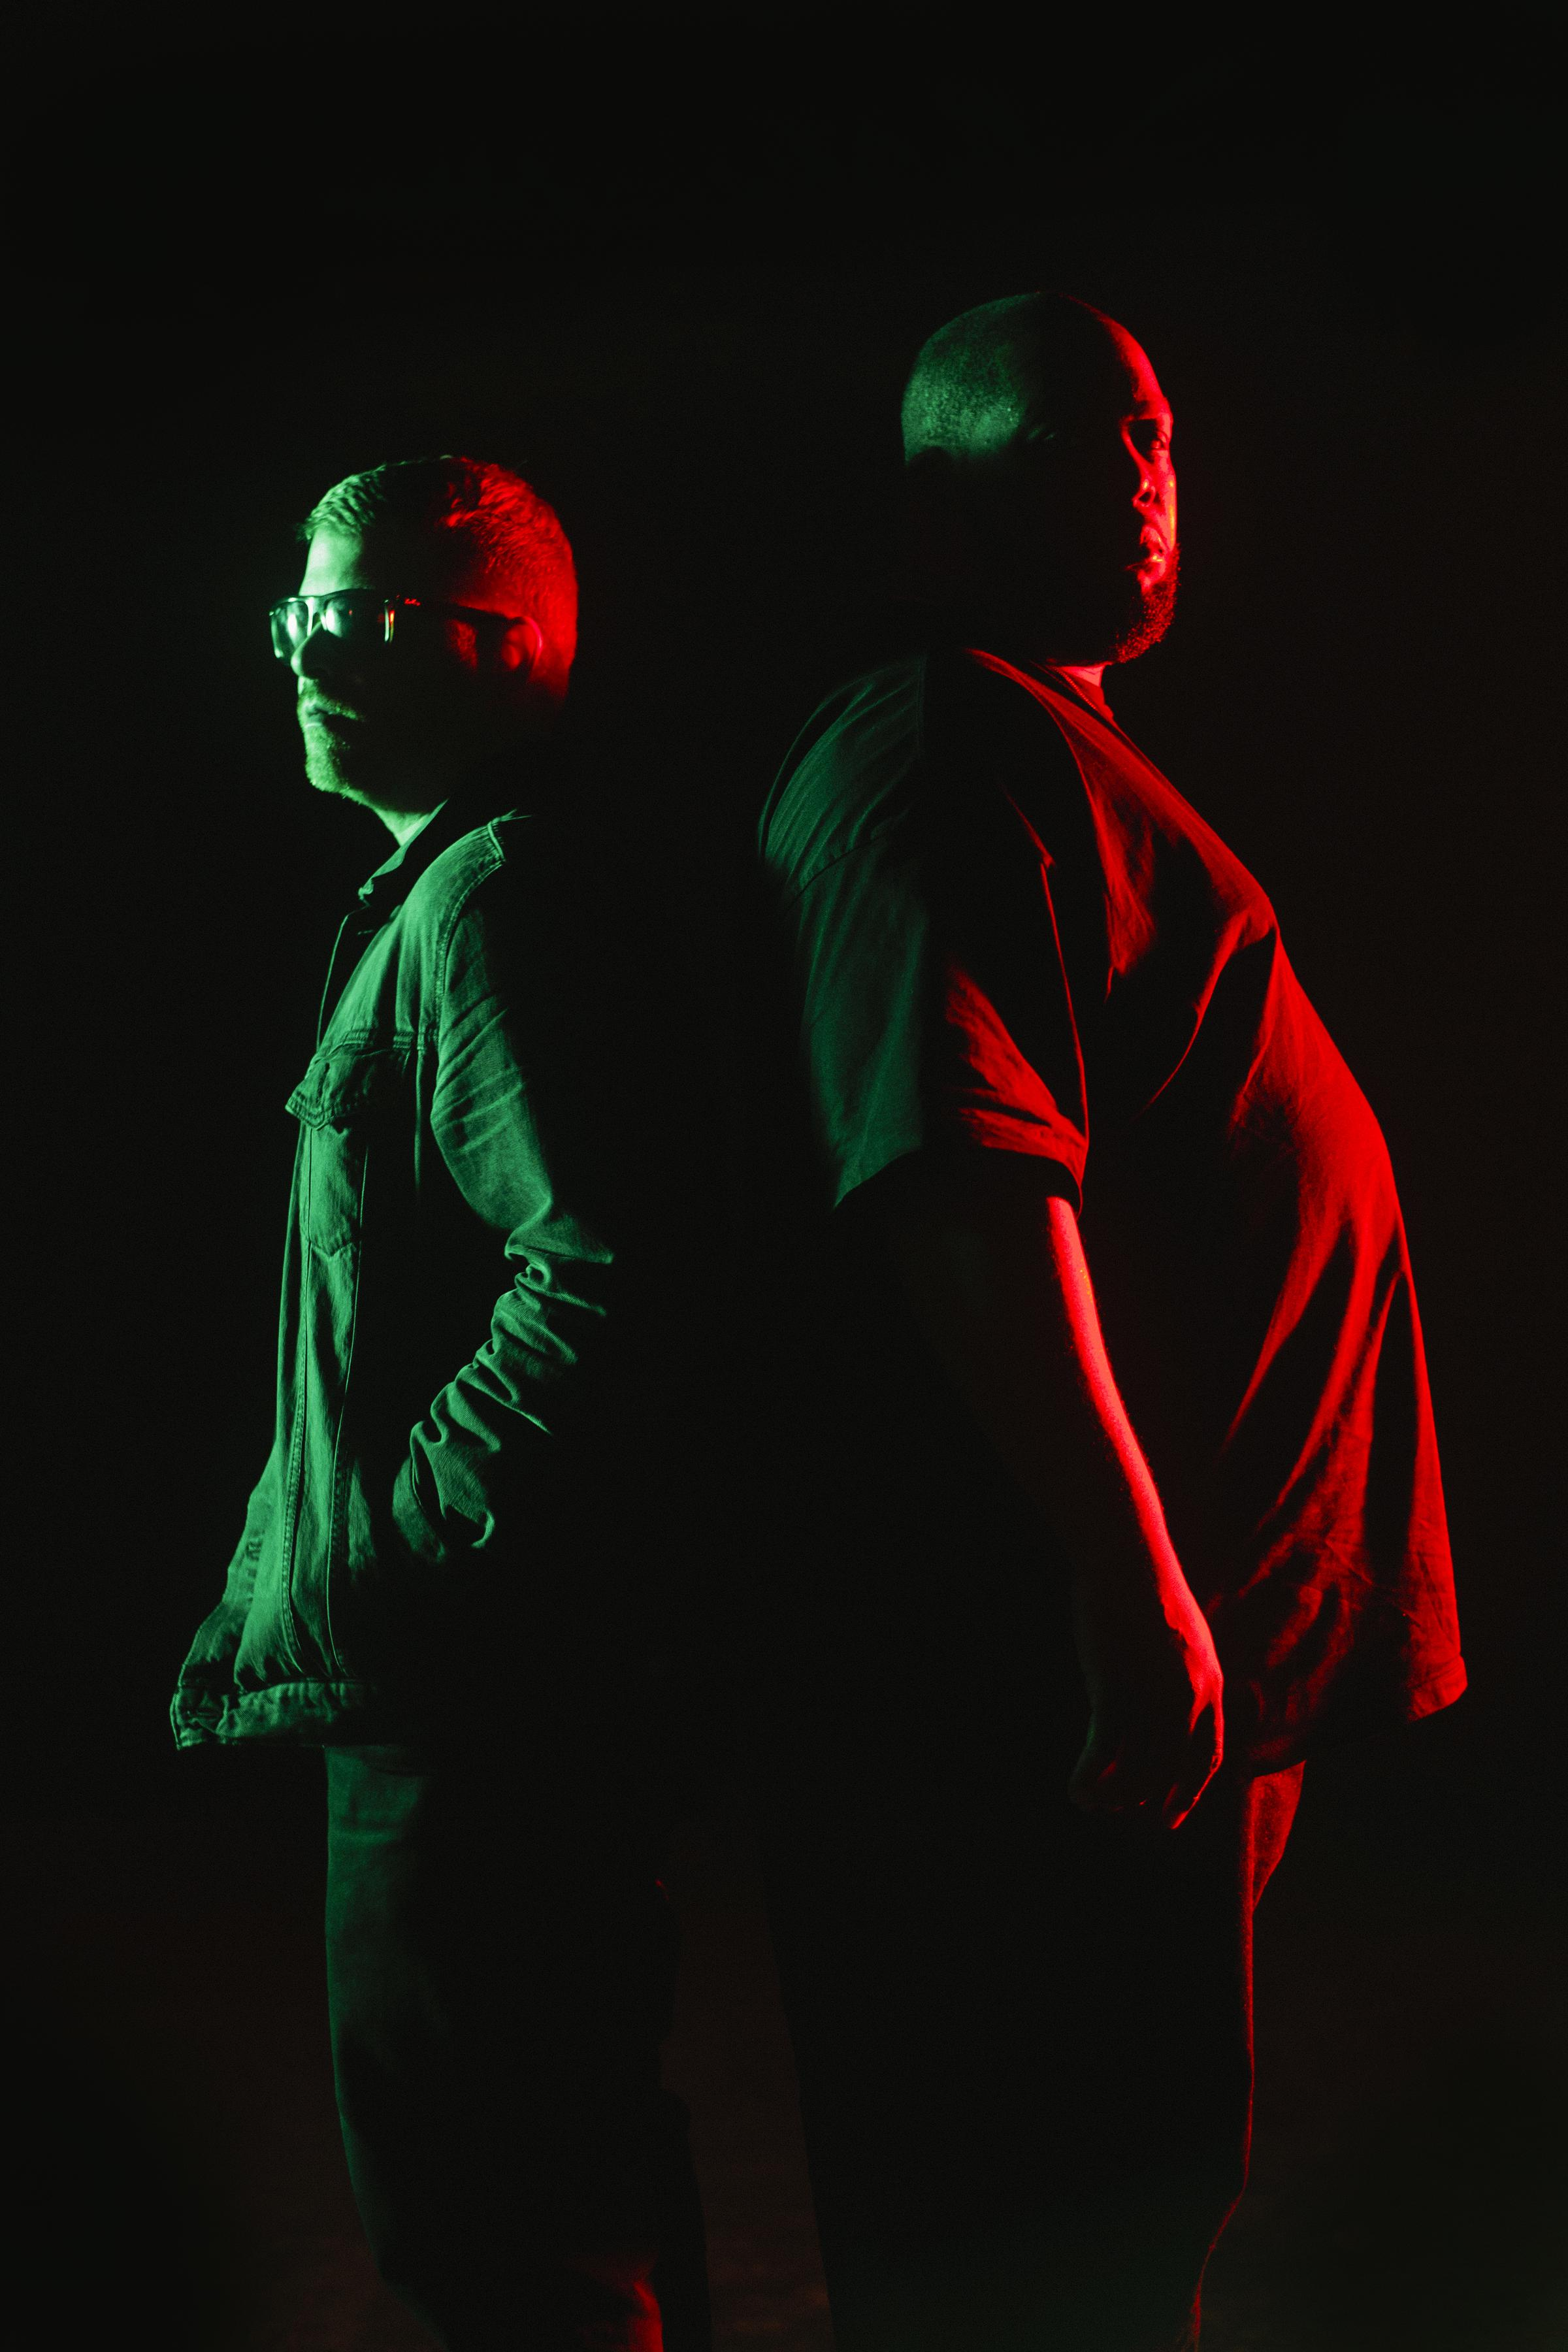 Two men standing back to back in a pitch black room are partly illuminated by a green and red light.